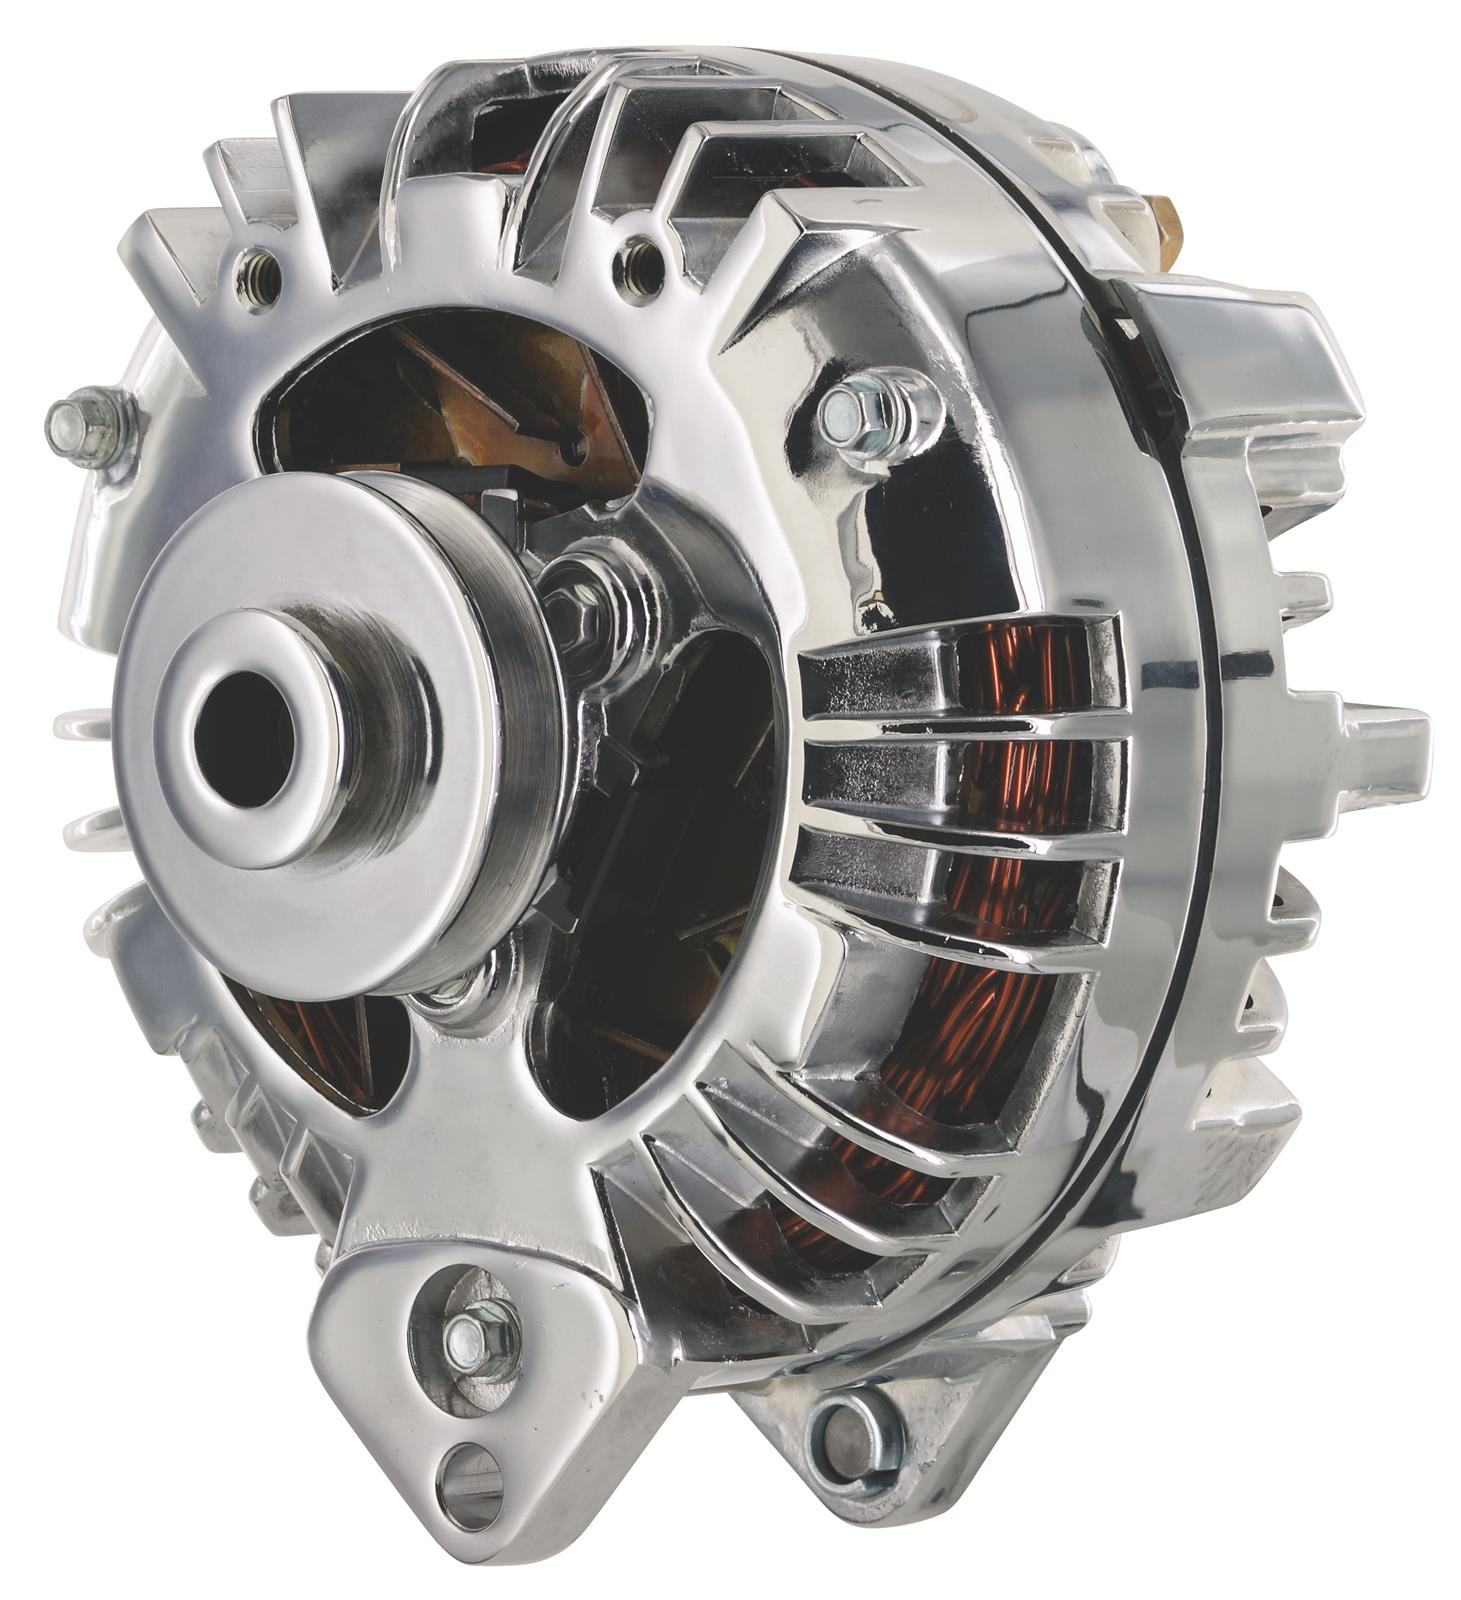 hight resolution of dodge ramcharger powermaster retro alternators 175191 free shipping on orders over 99 at summit racing